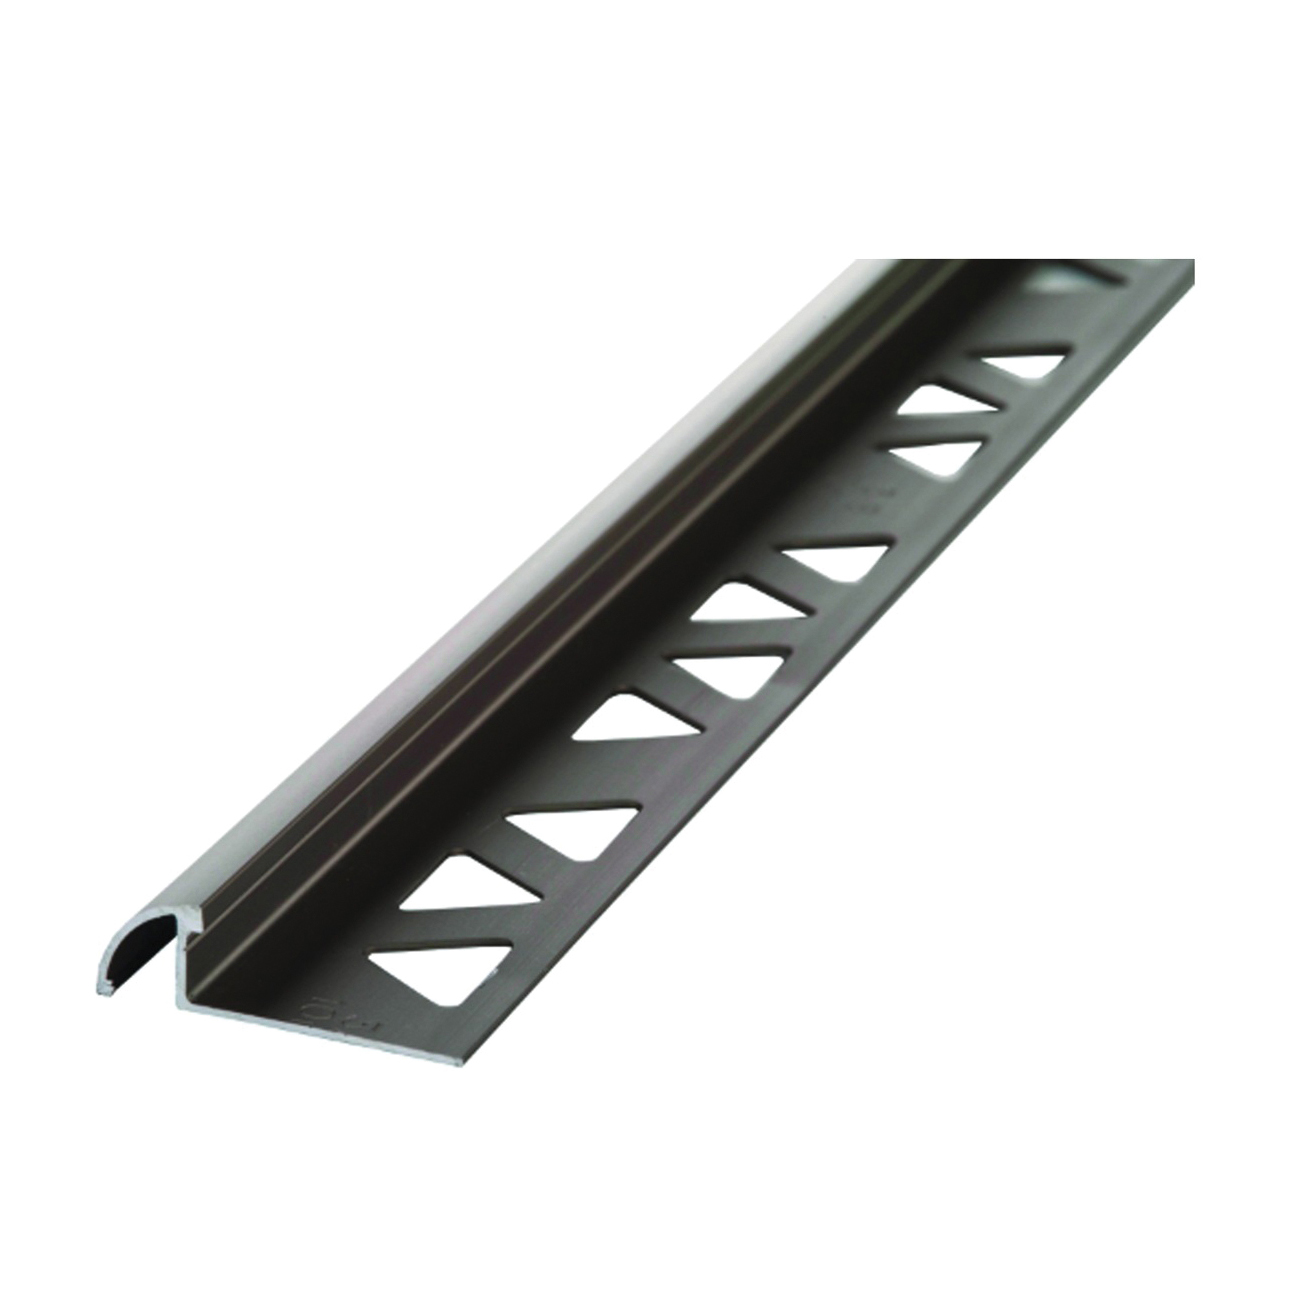 Picture of M-D 31373 Bullnose Tile Edge, 8 ft L, 1-3/8 in W, Aluminum, Pewter